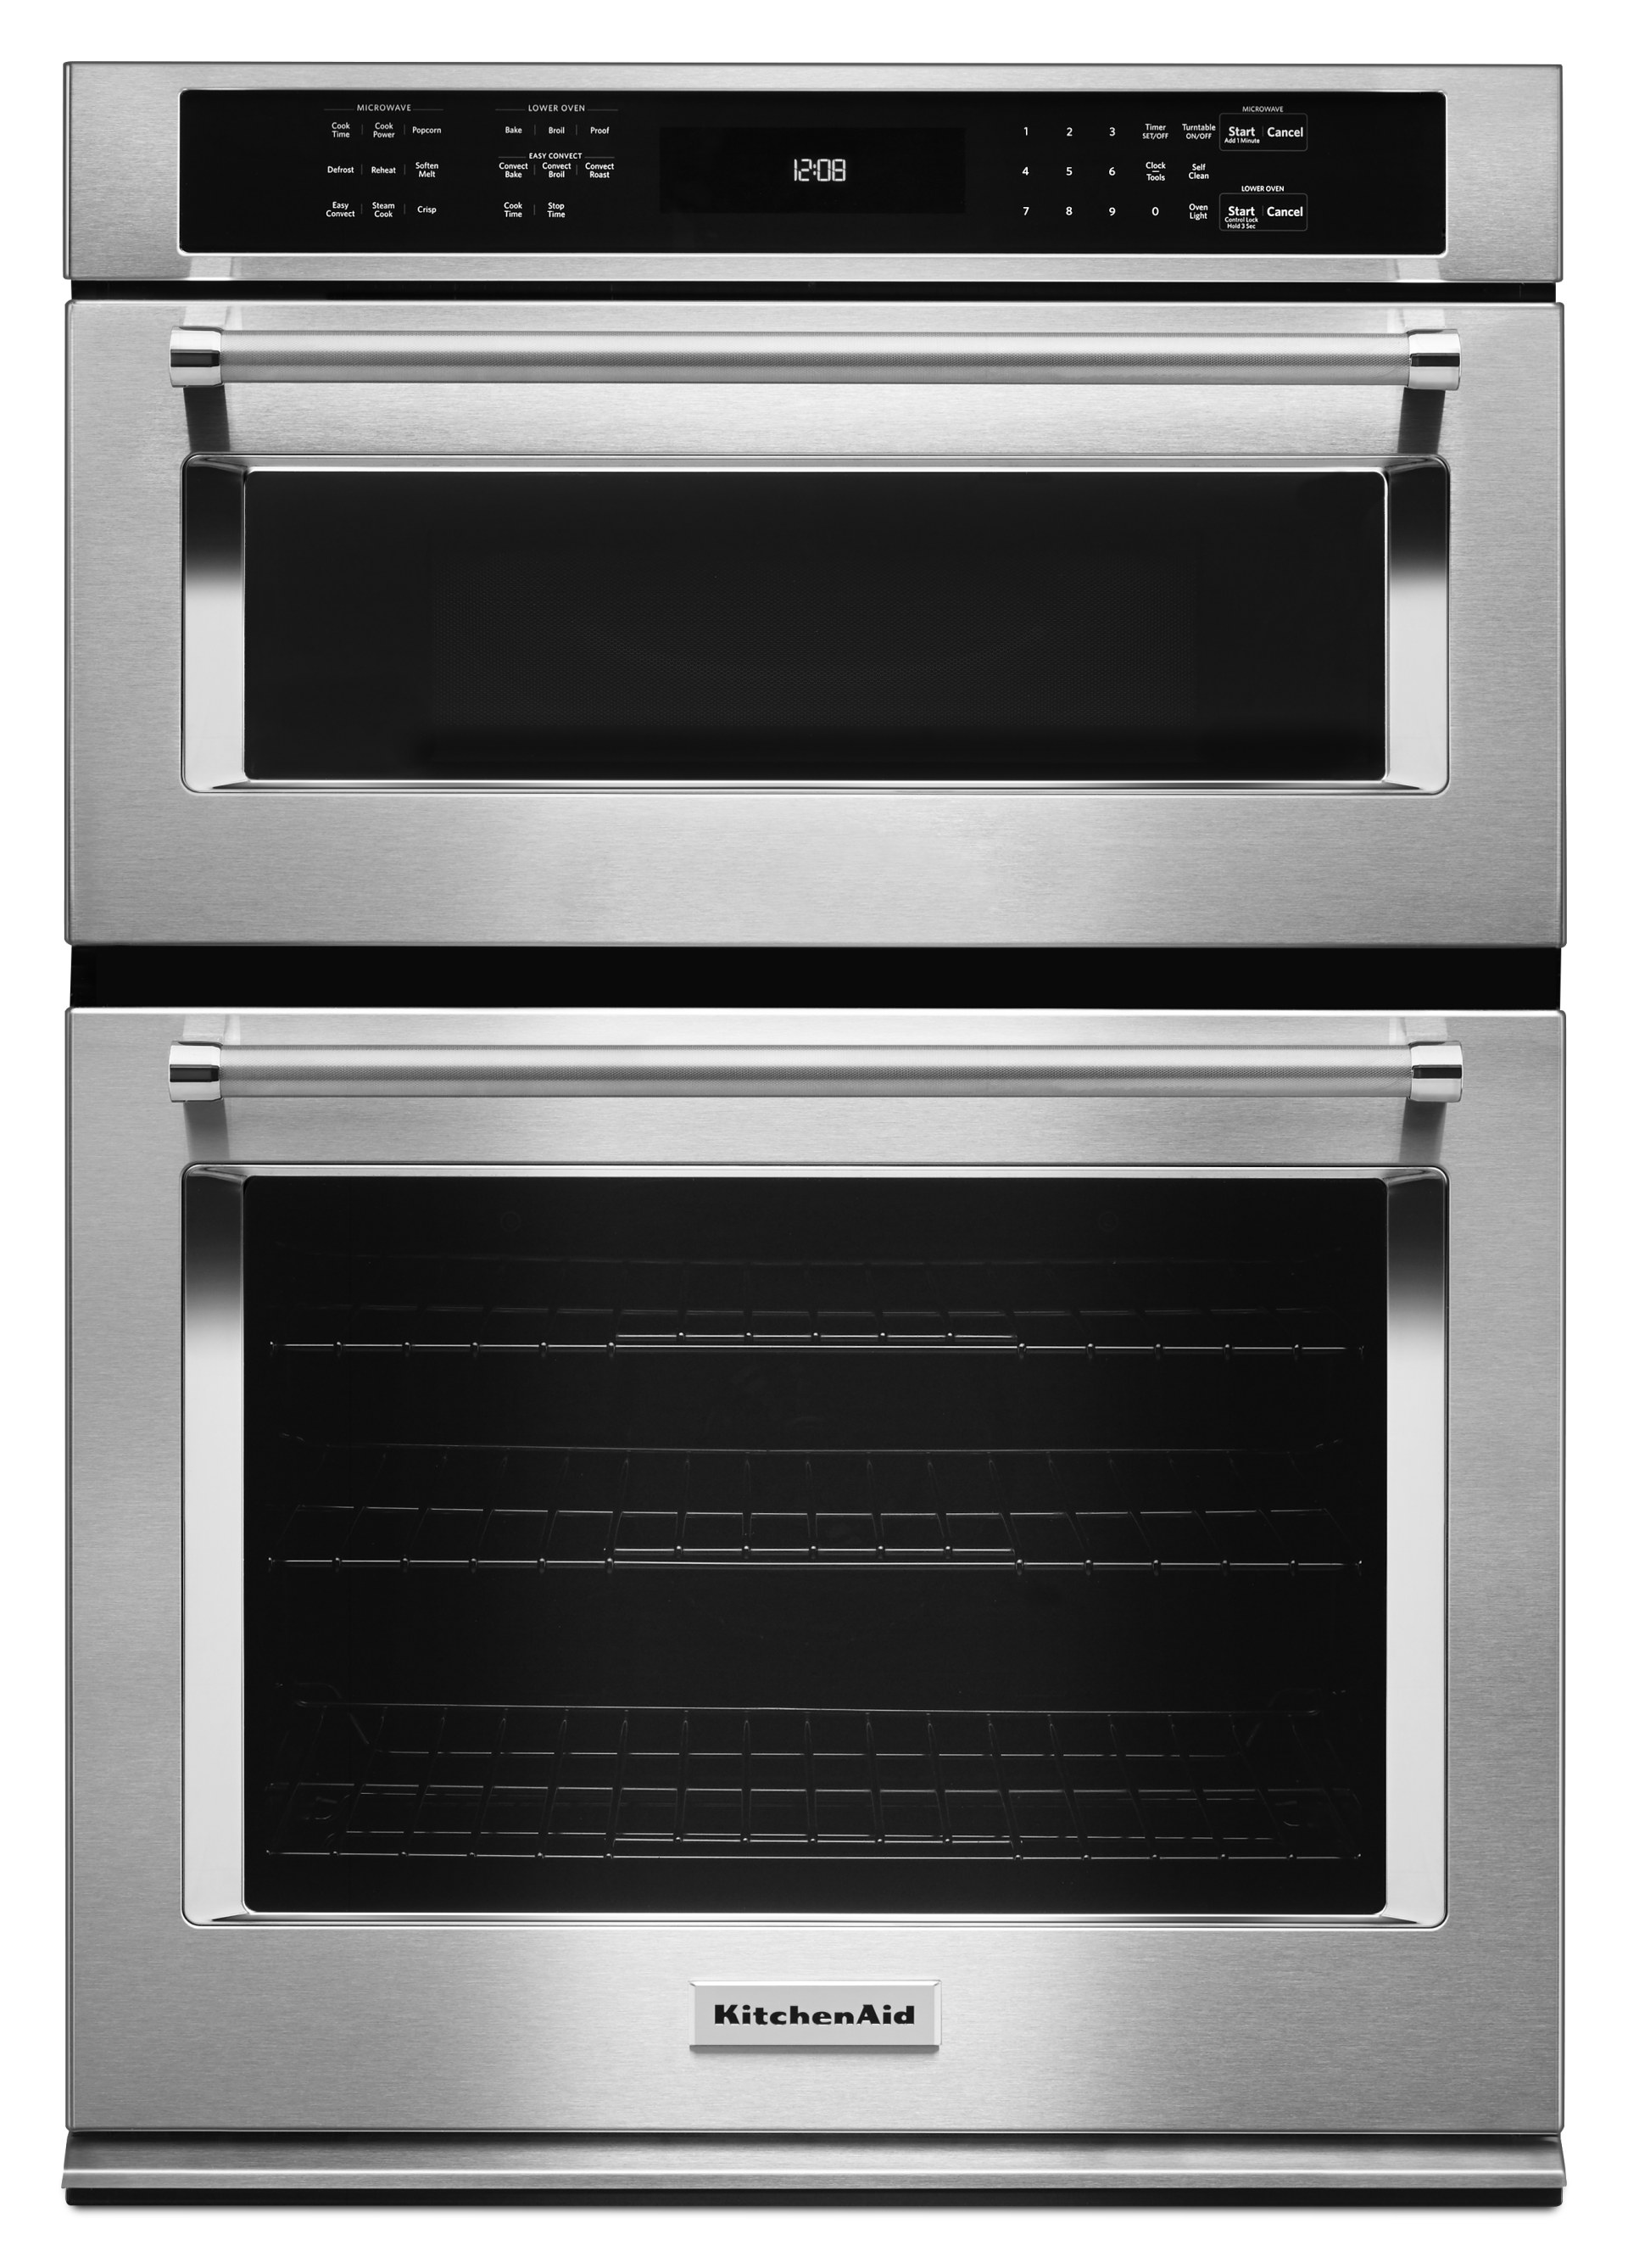 kitchenaid 30 electric wall oven with even heat true convection and built in microwave with crispwave microwave technology